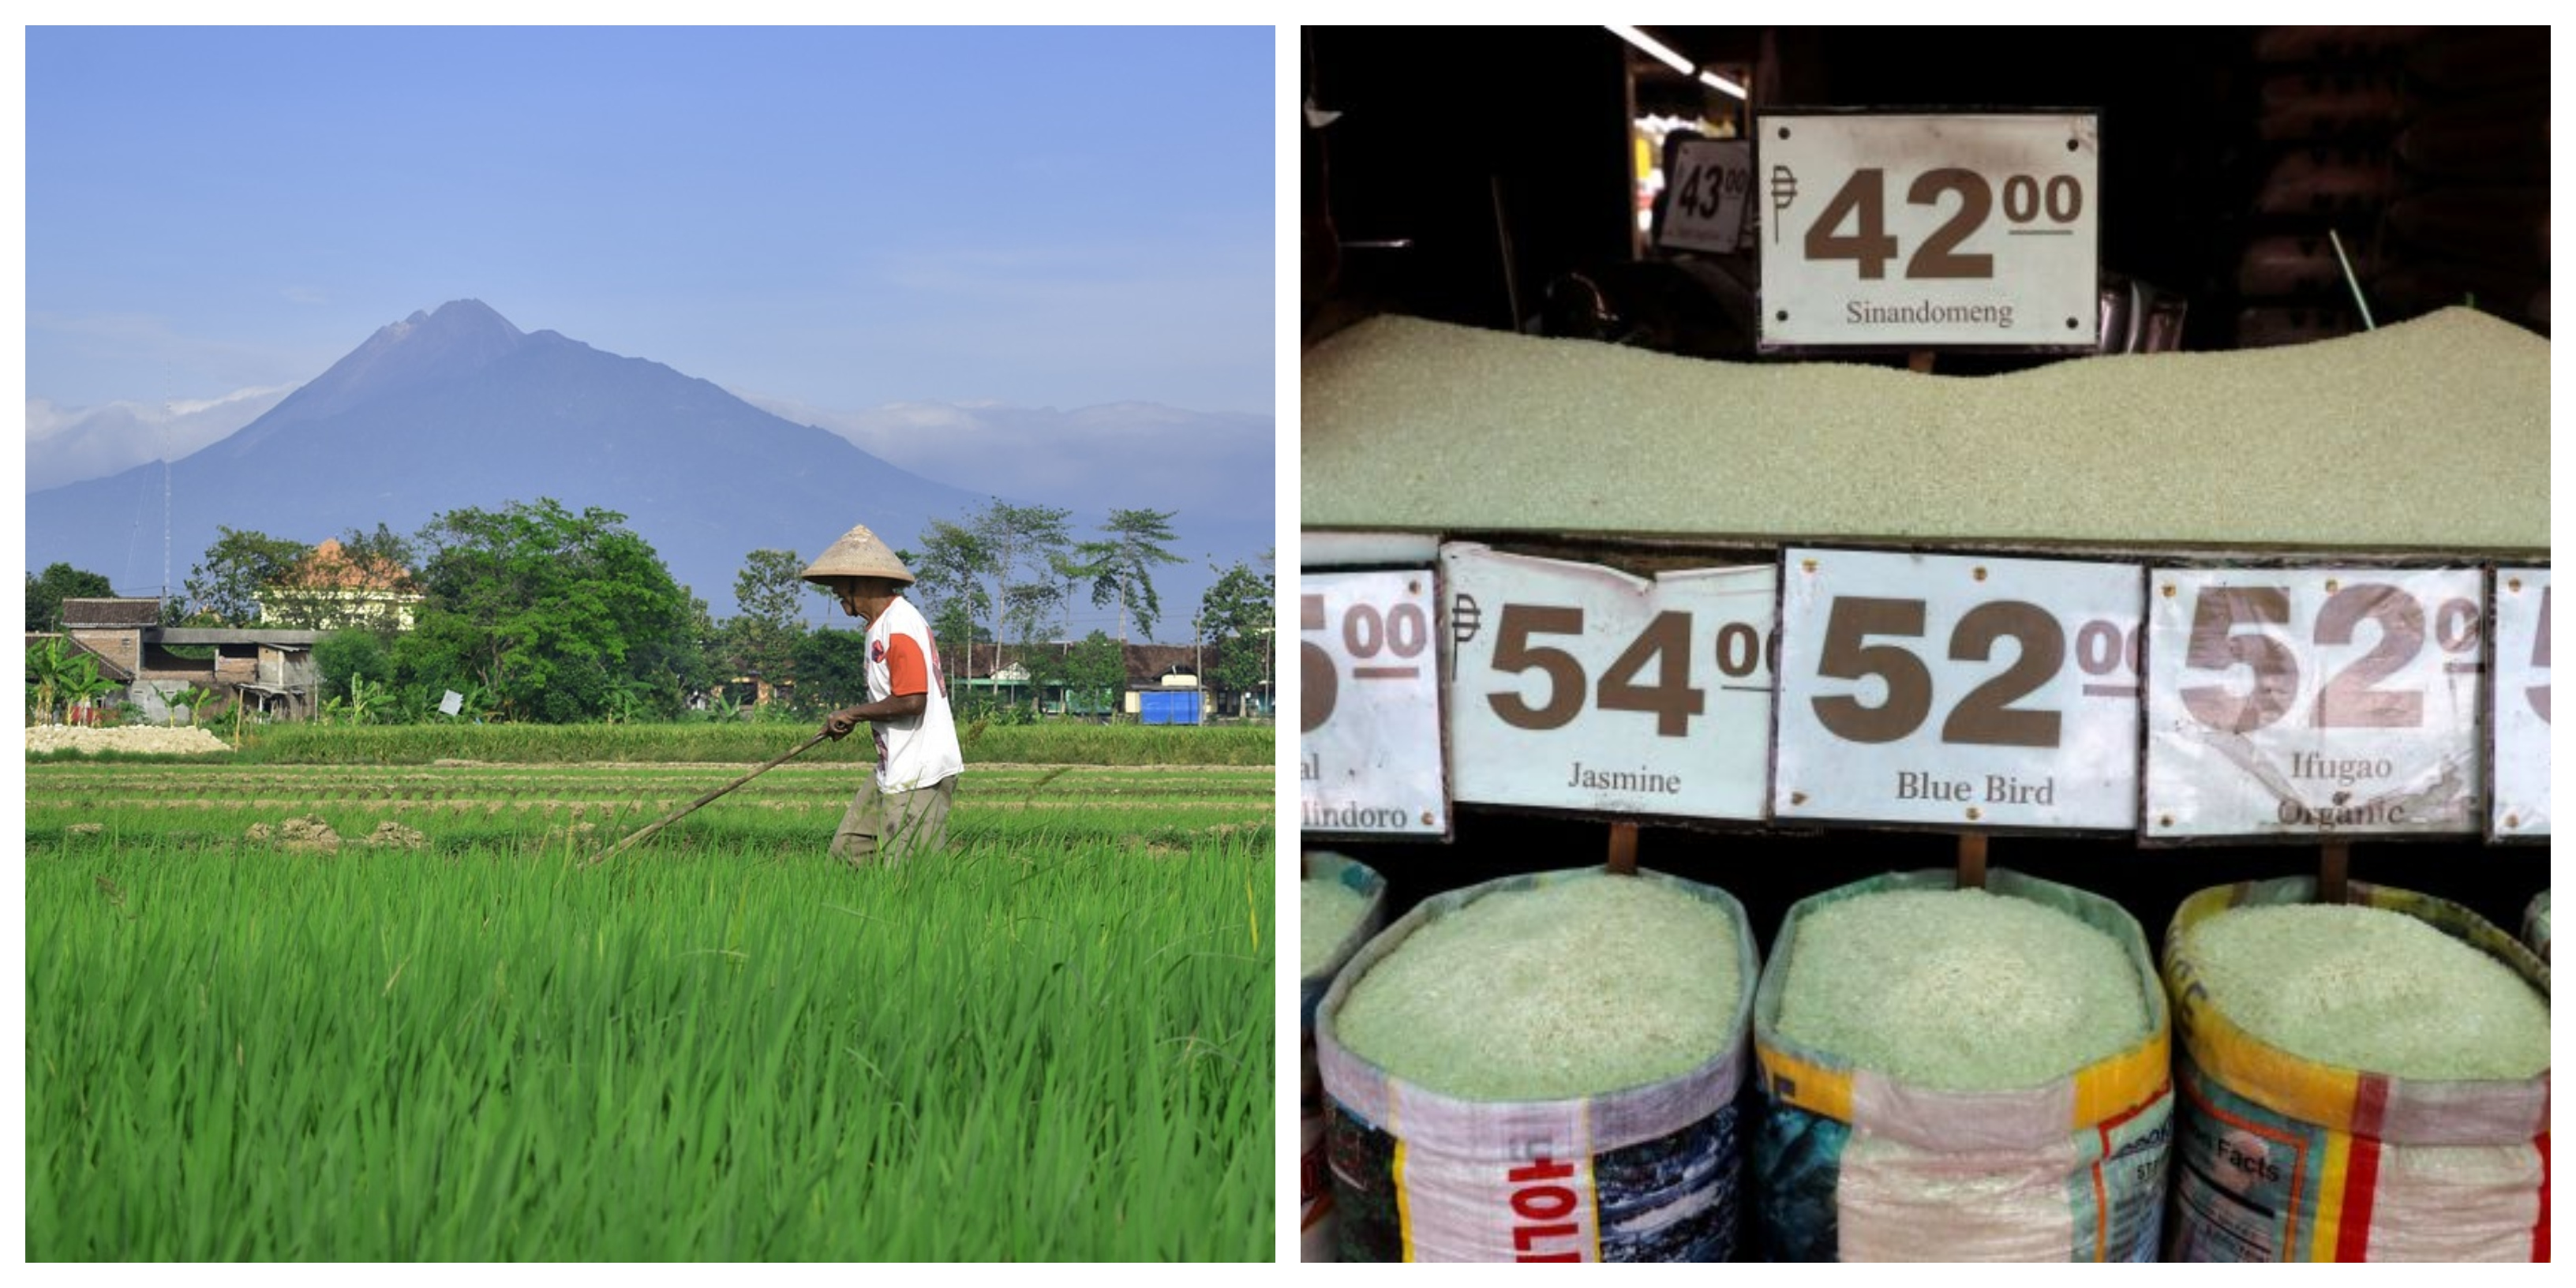 Collage of a rice farmer toiling in the field (photo from pixabay.com) and of Philippine rice traders' selling price (Photo from Reuters)